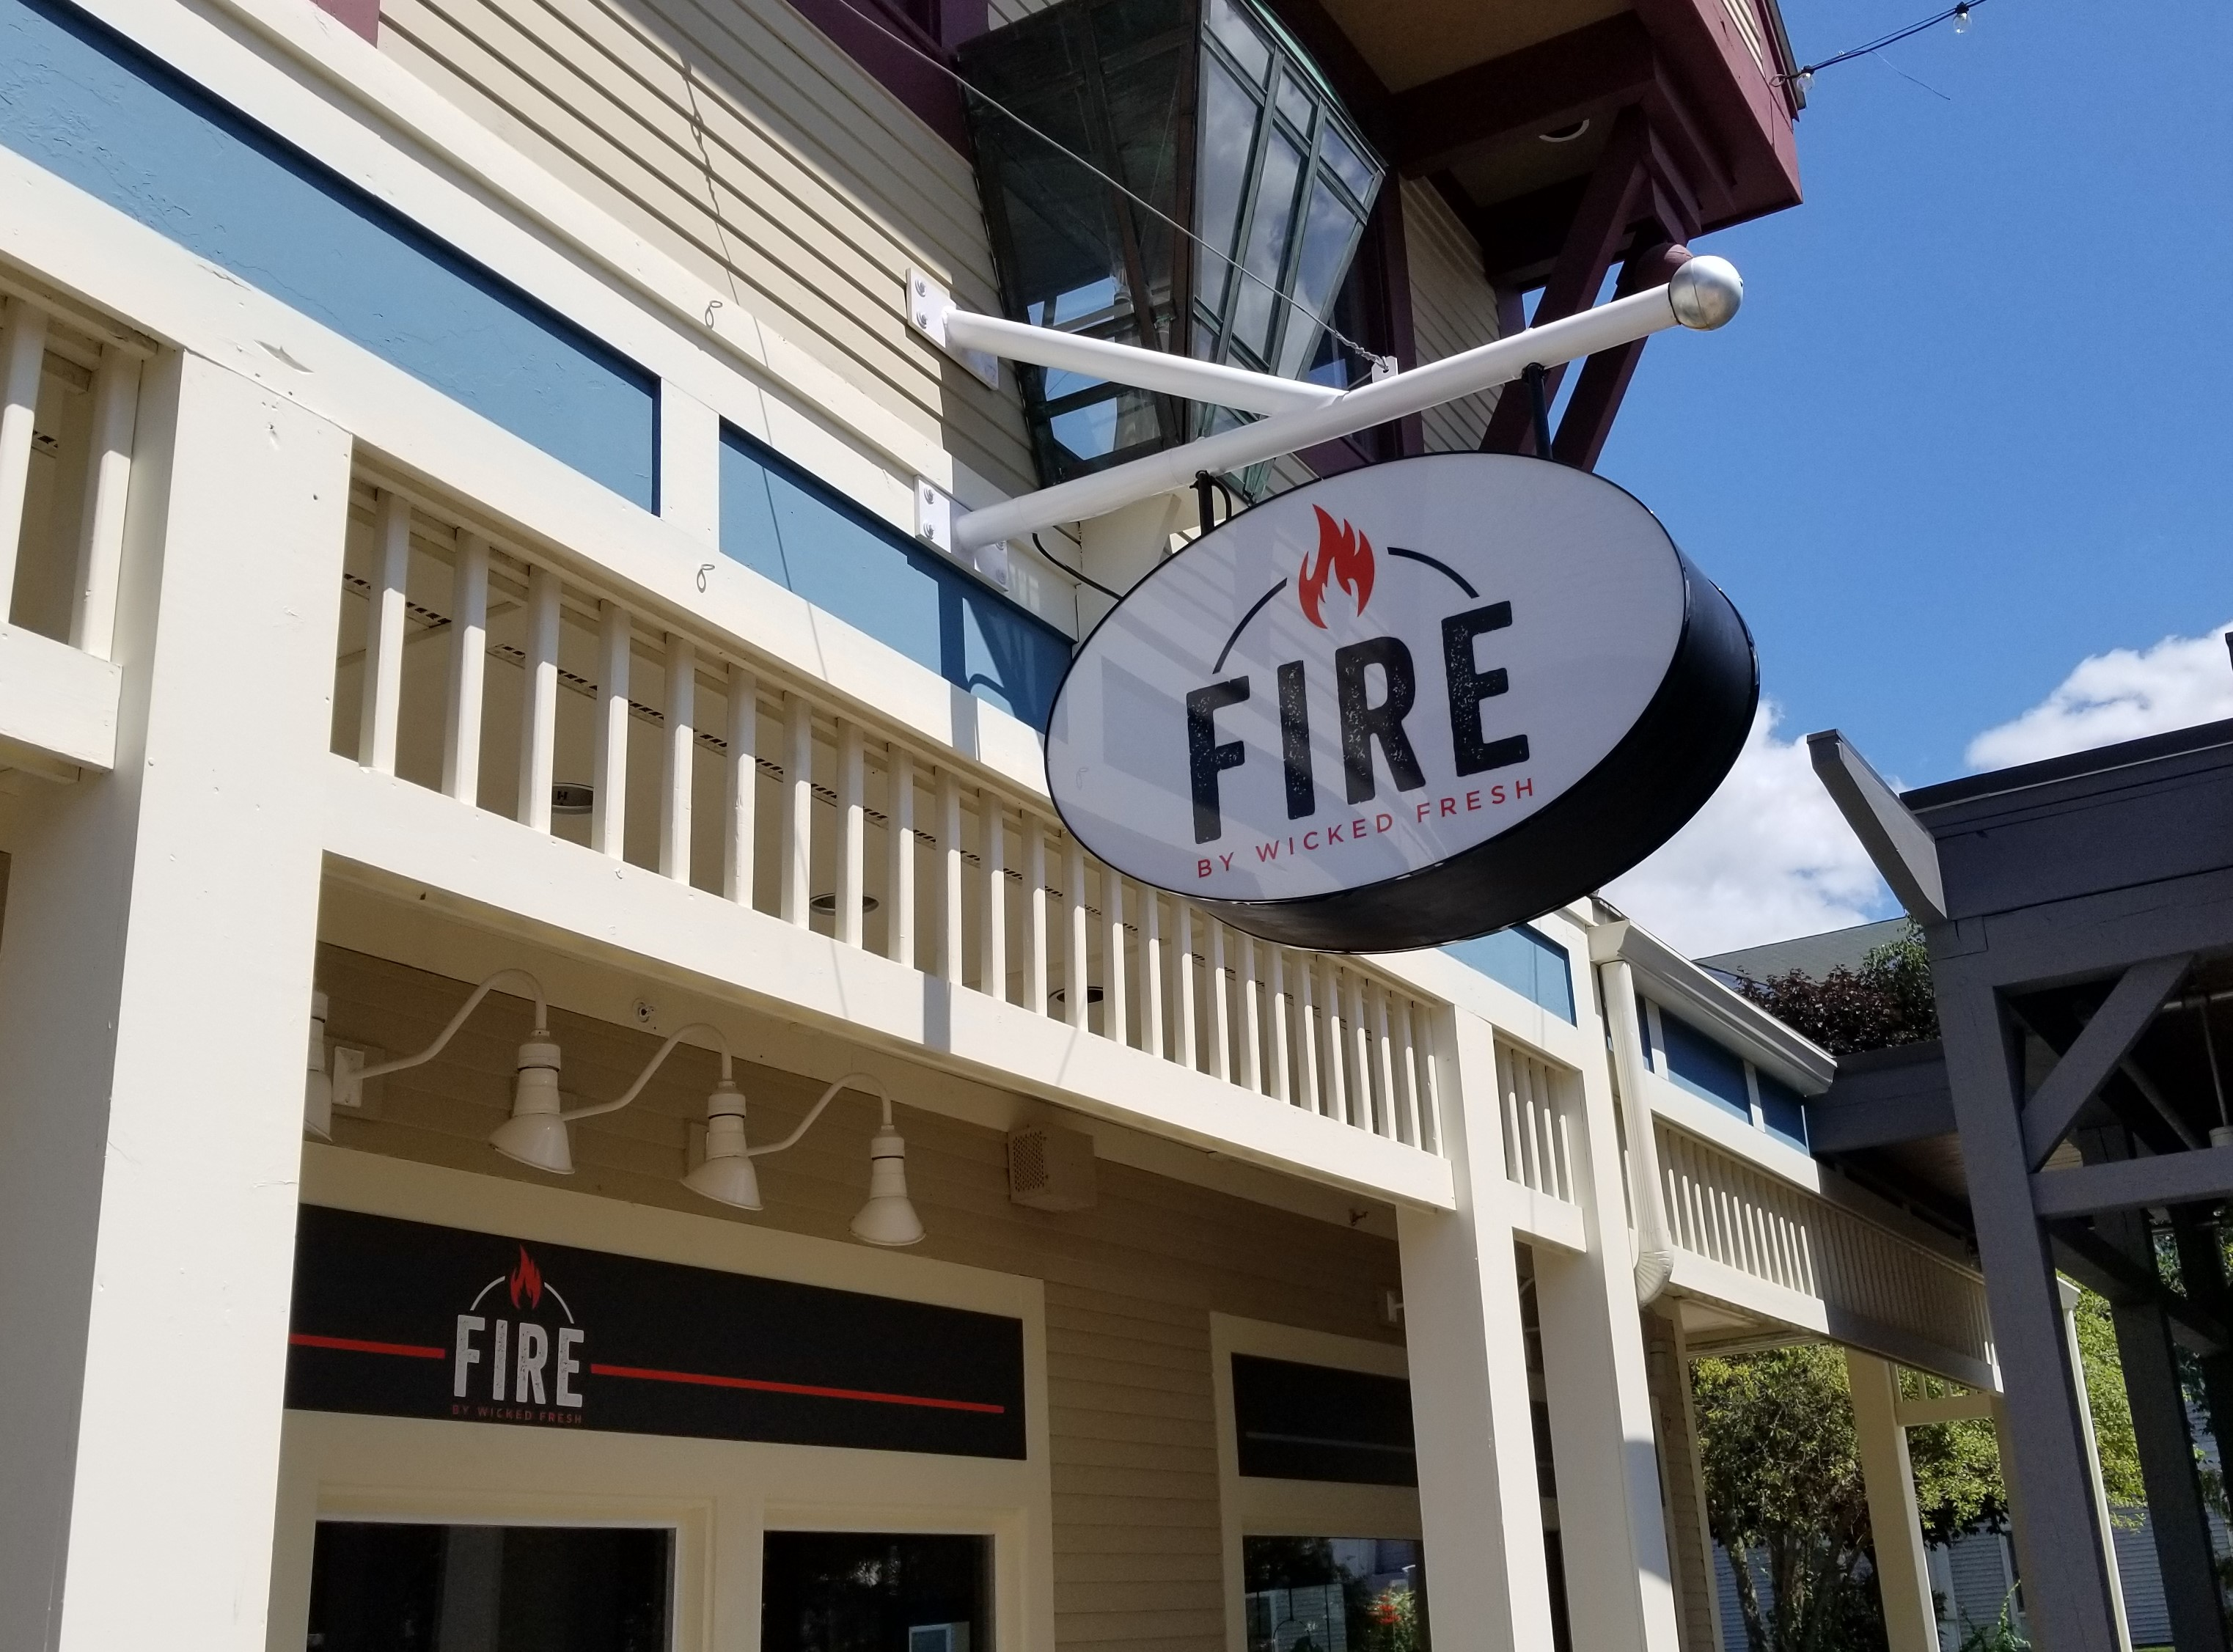 Fire by wicked Int Lit sign